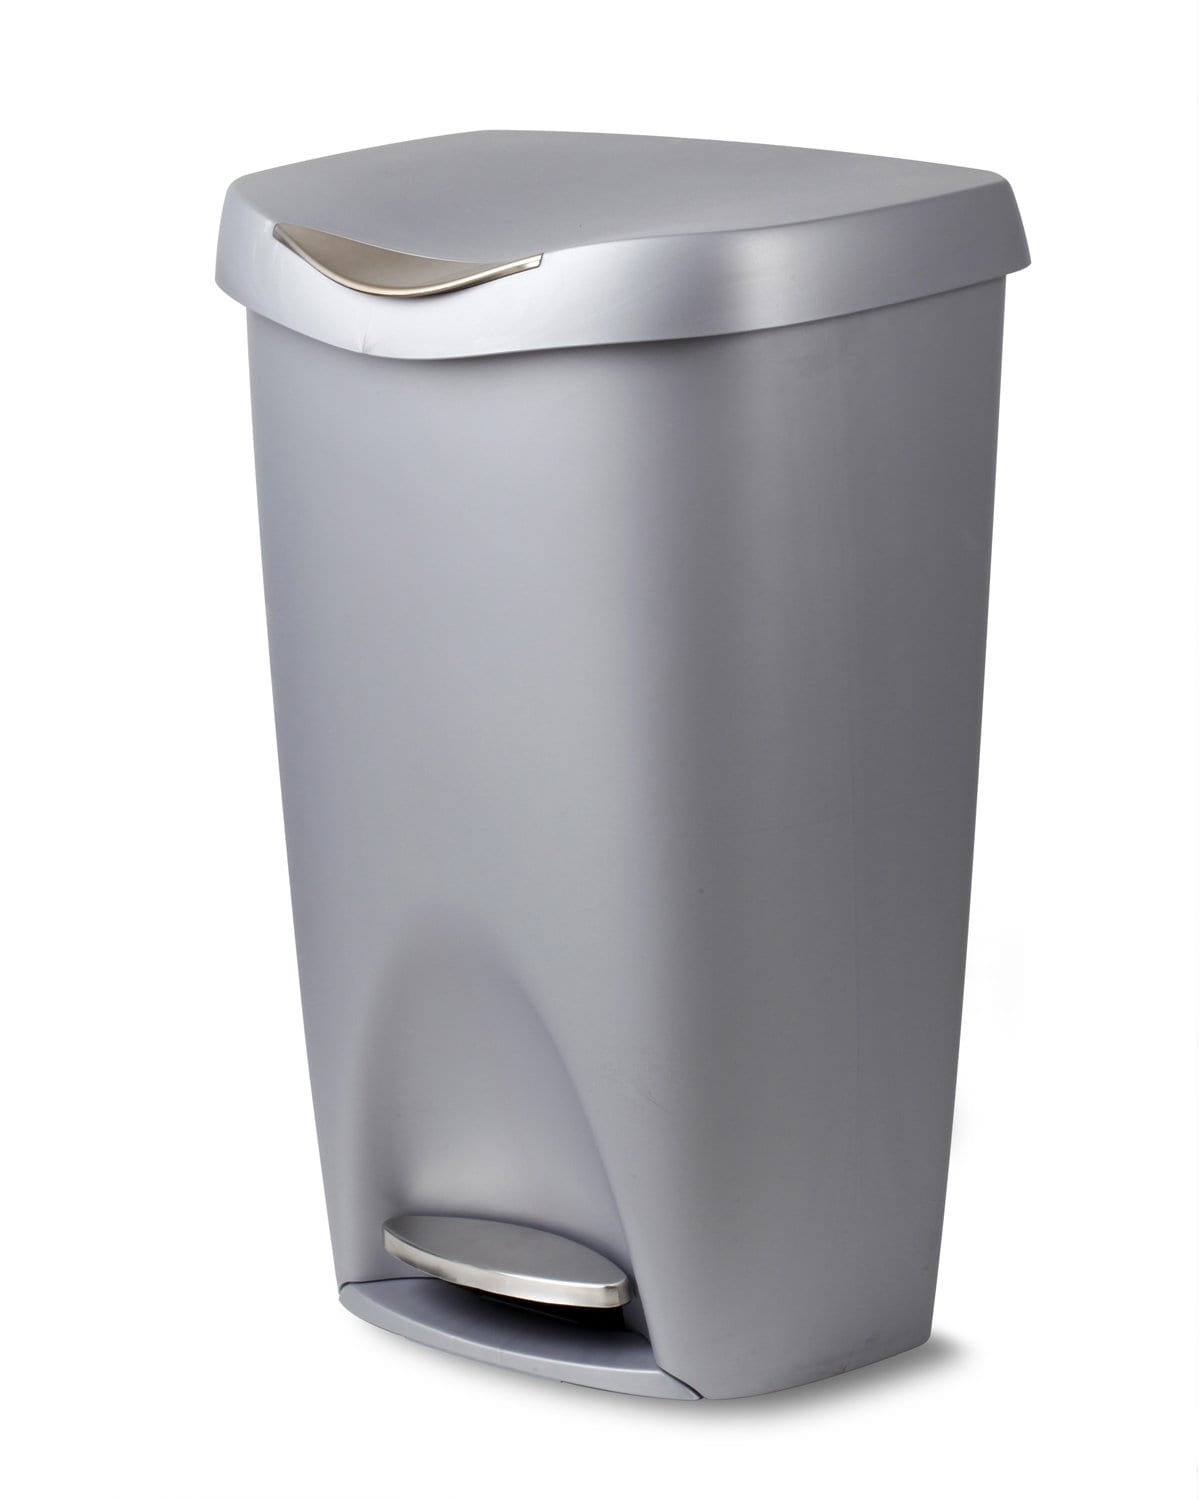 Umbra Brim 13 Gallon Trash Can